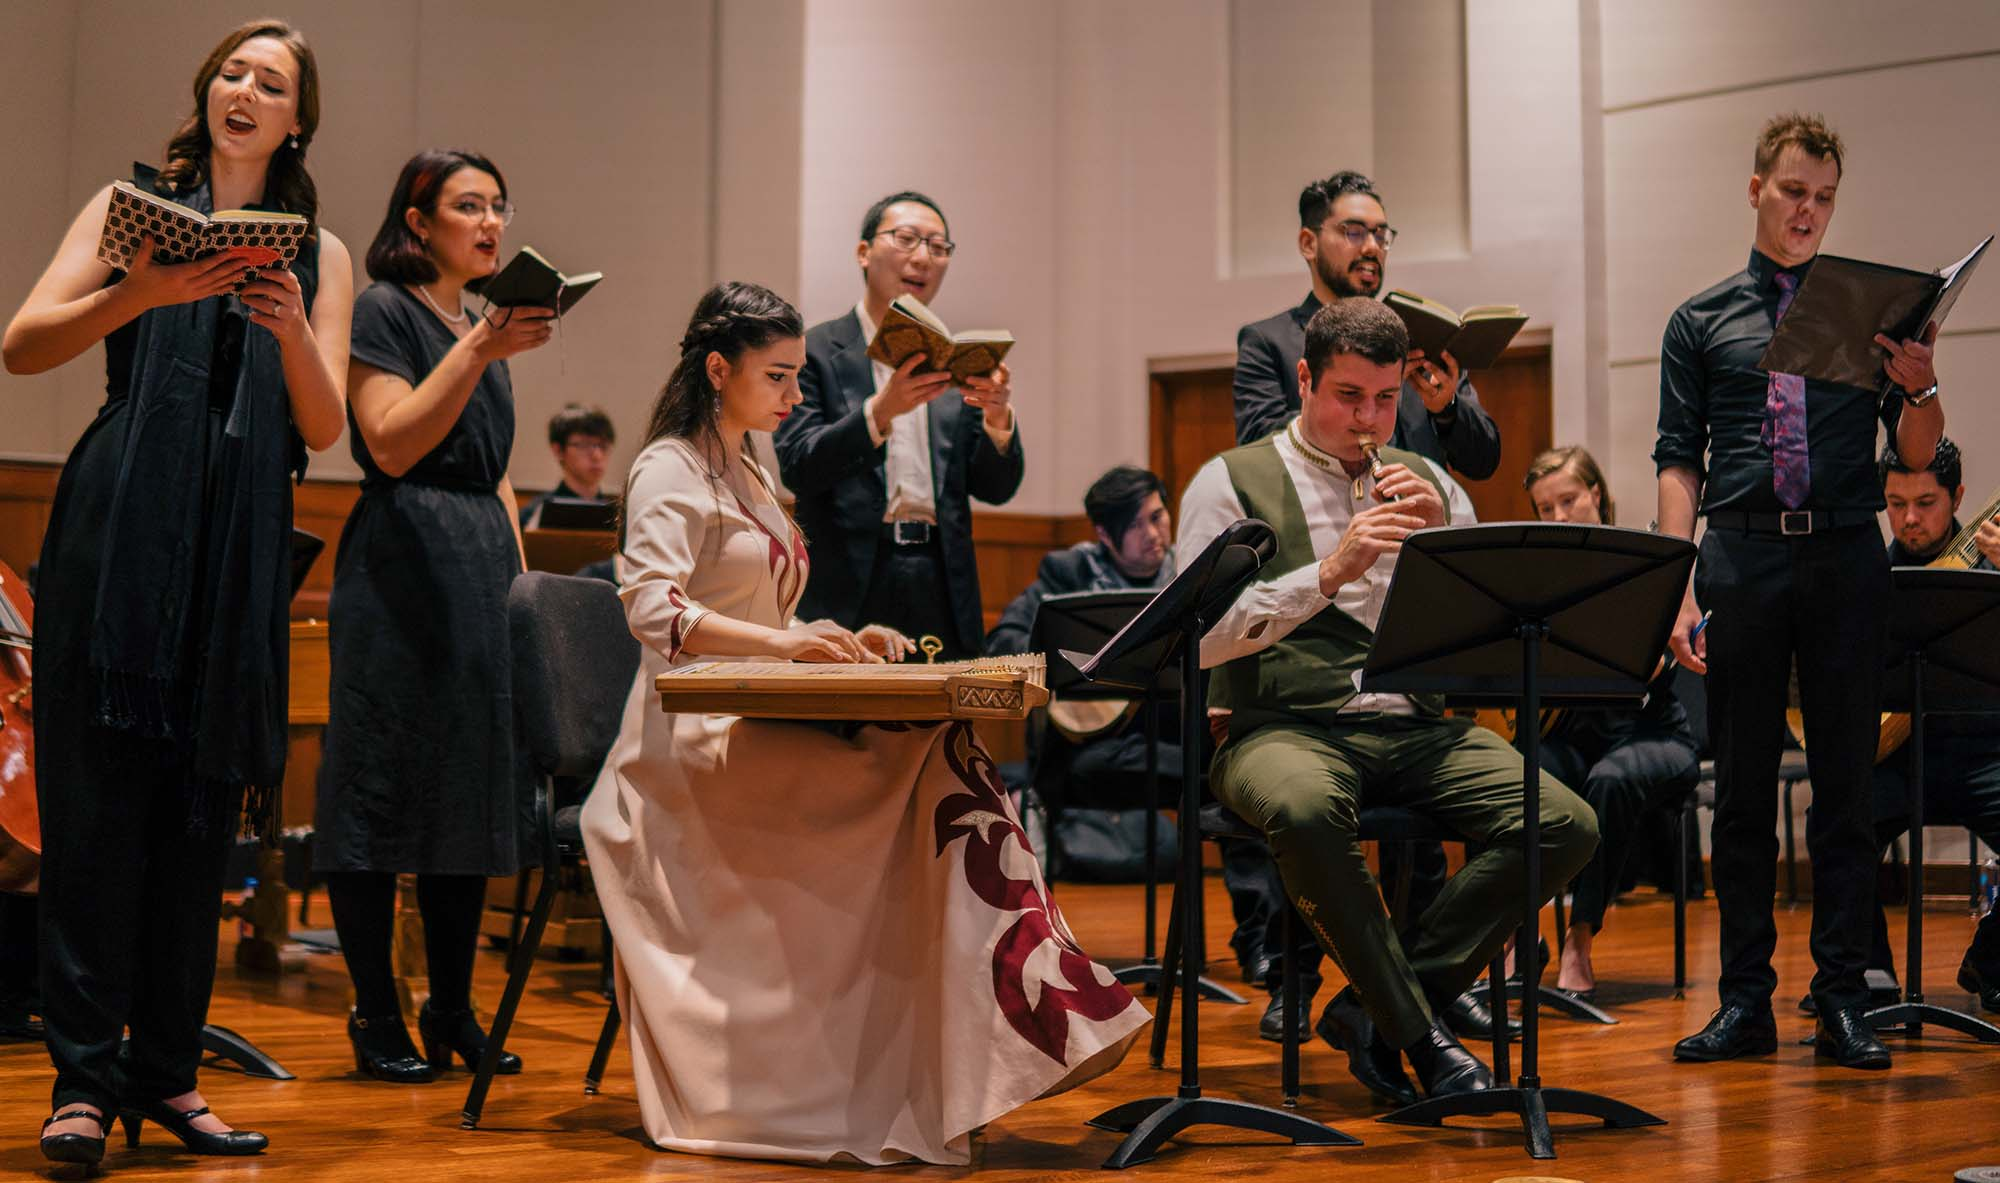 Adam Gilbert leads the Baroque Sinfonia in a concert featuring music from Austria, Poland, and Armenia. (Photo by Chris O'Brien)